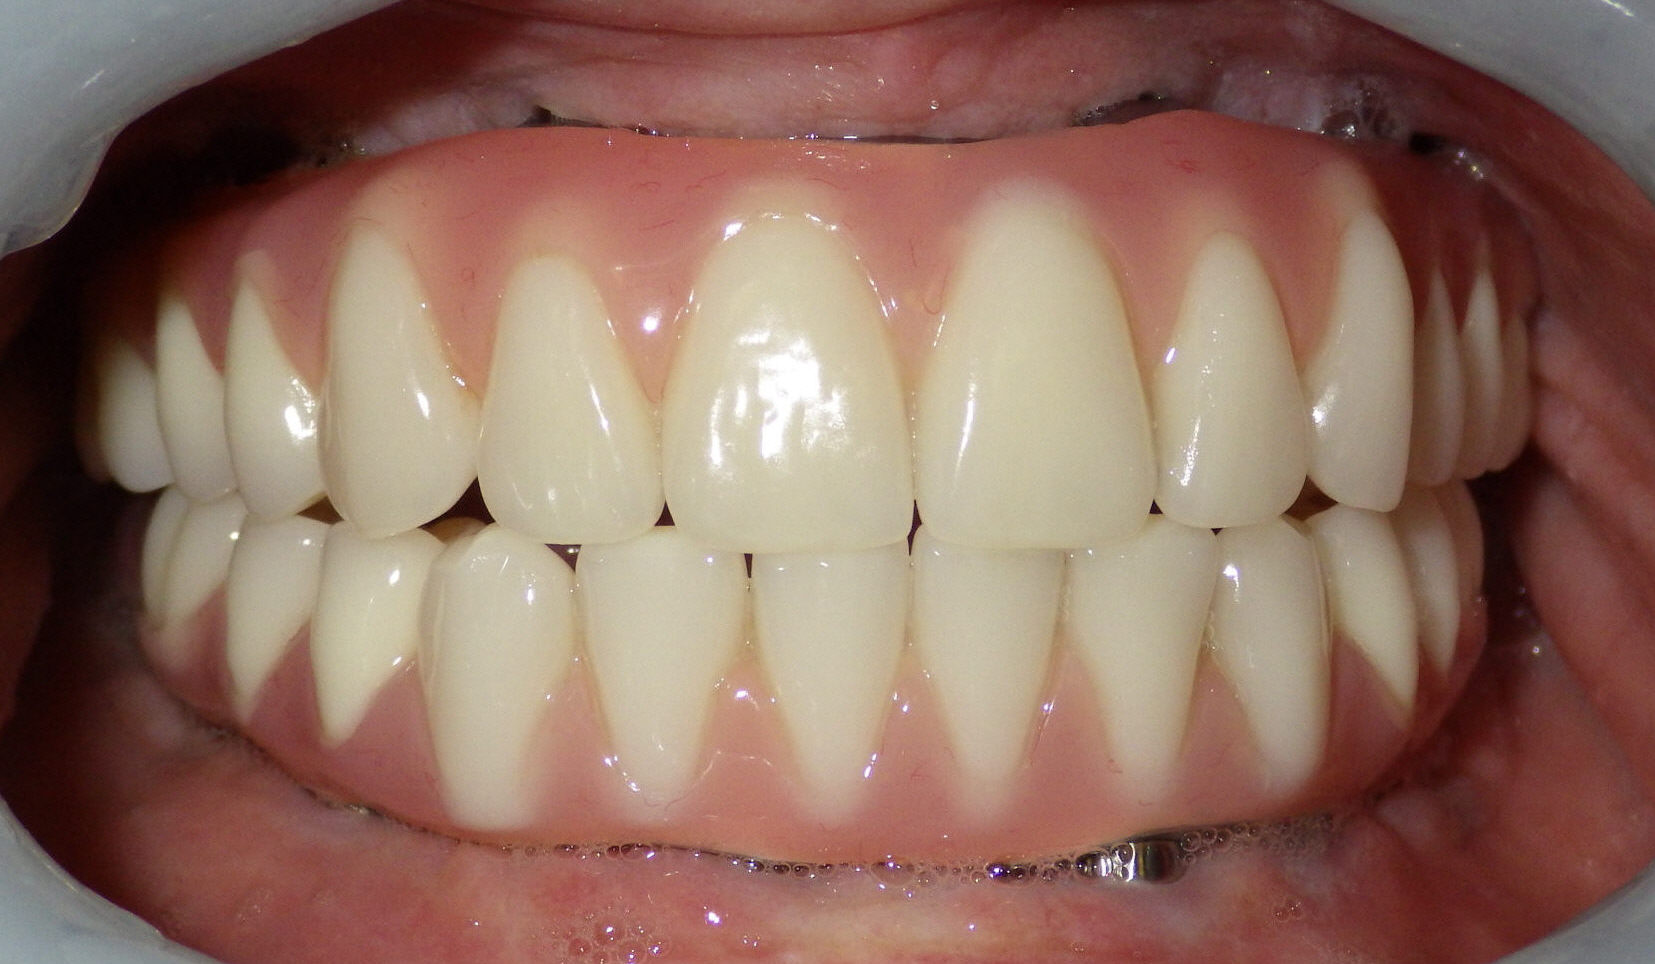 Post-procedure view of patient's teeth